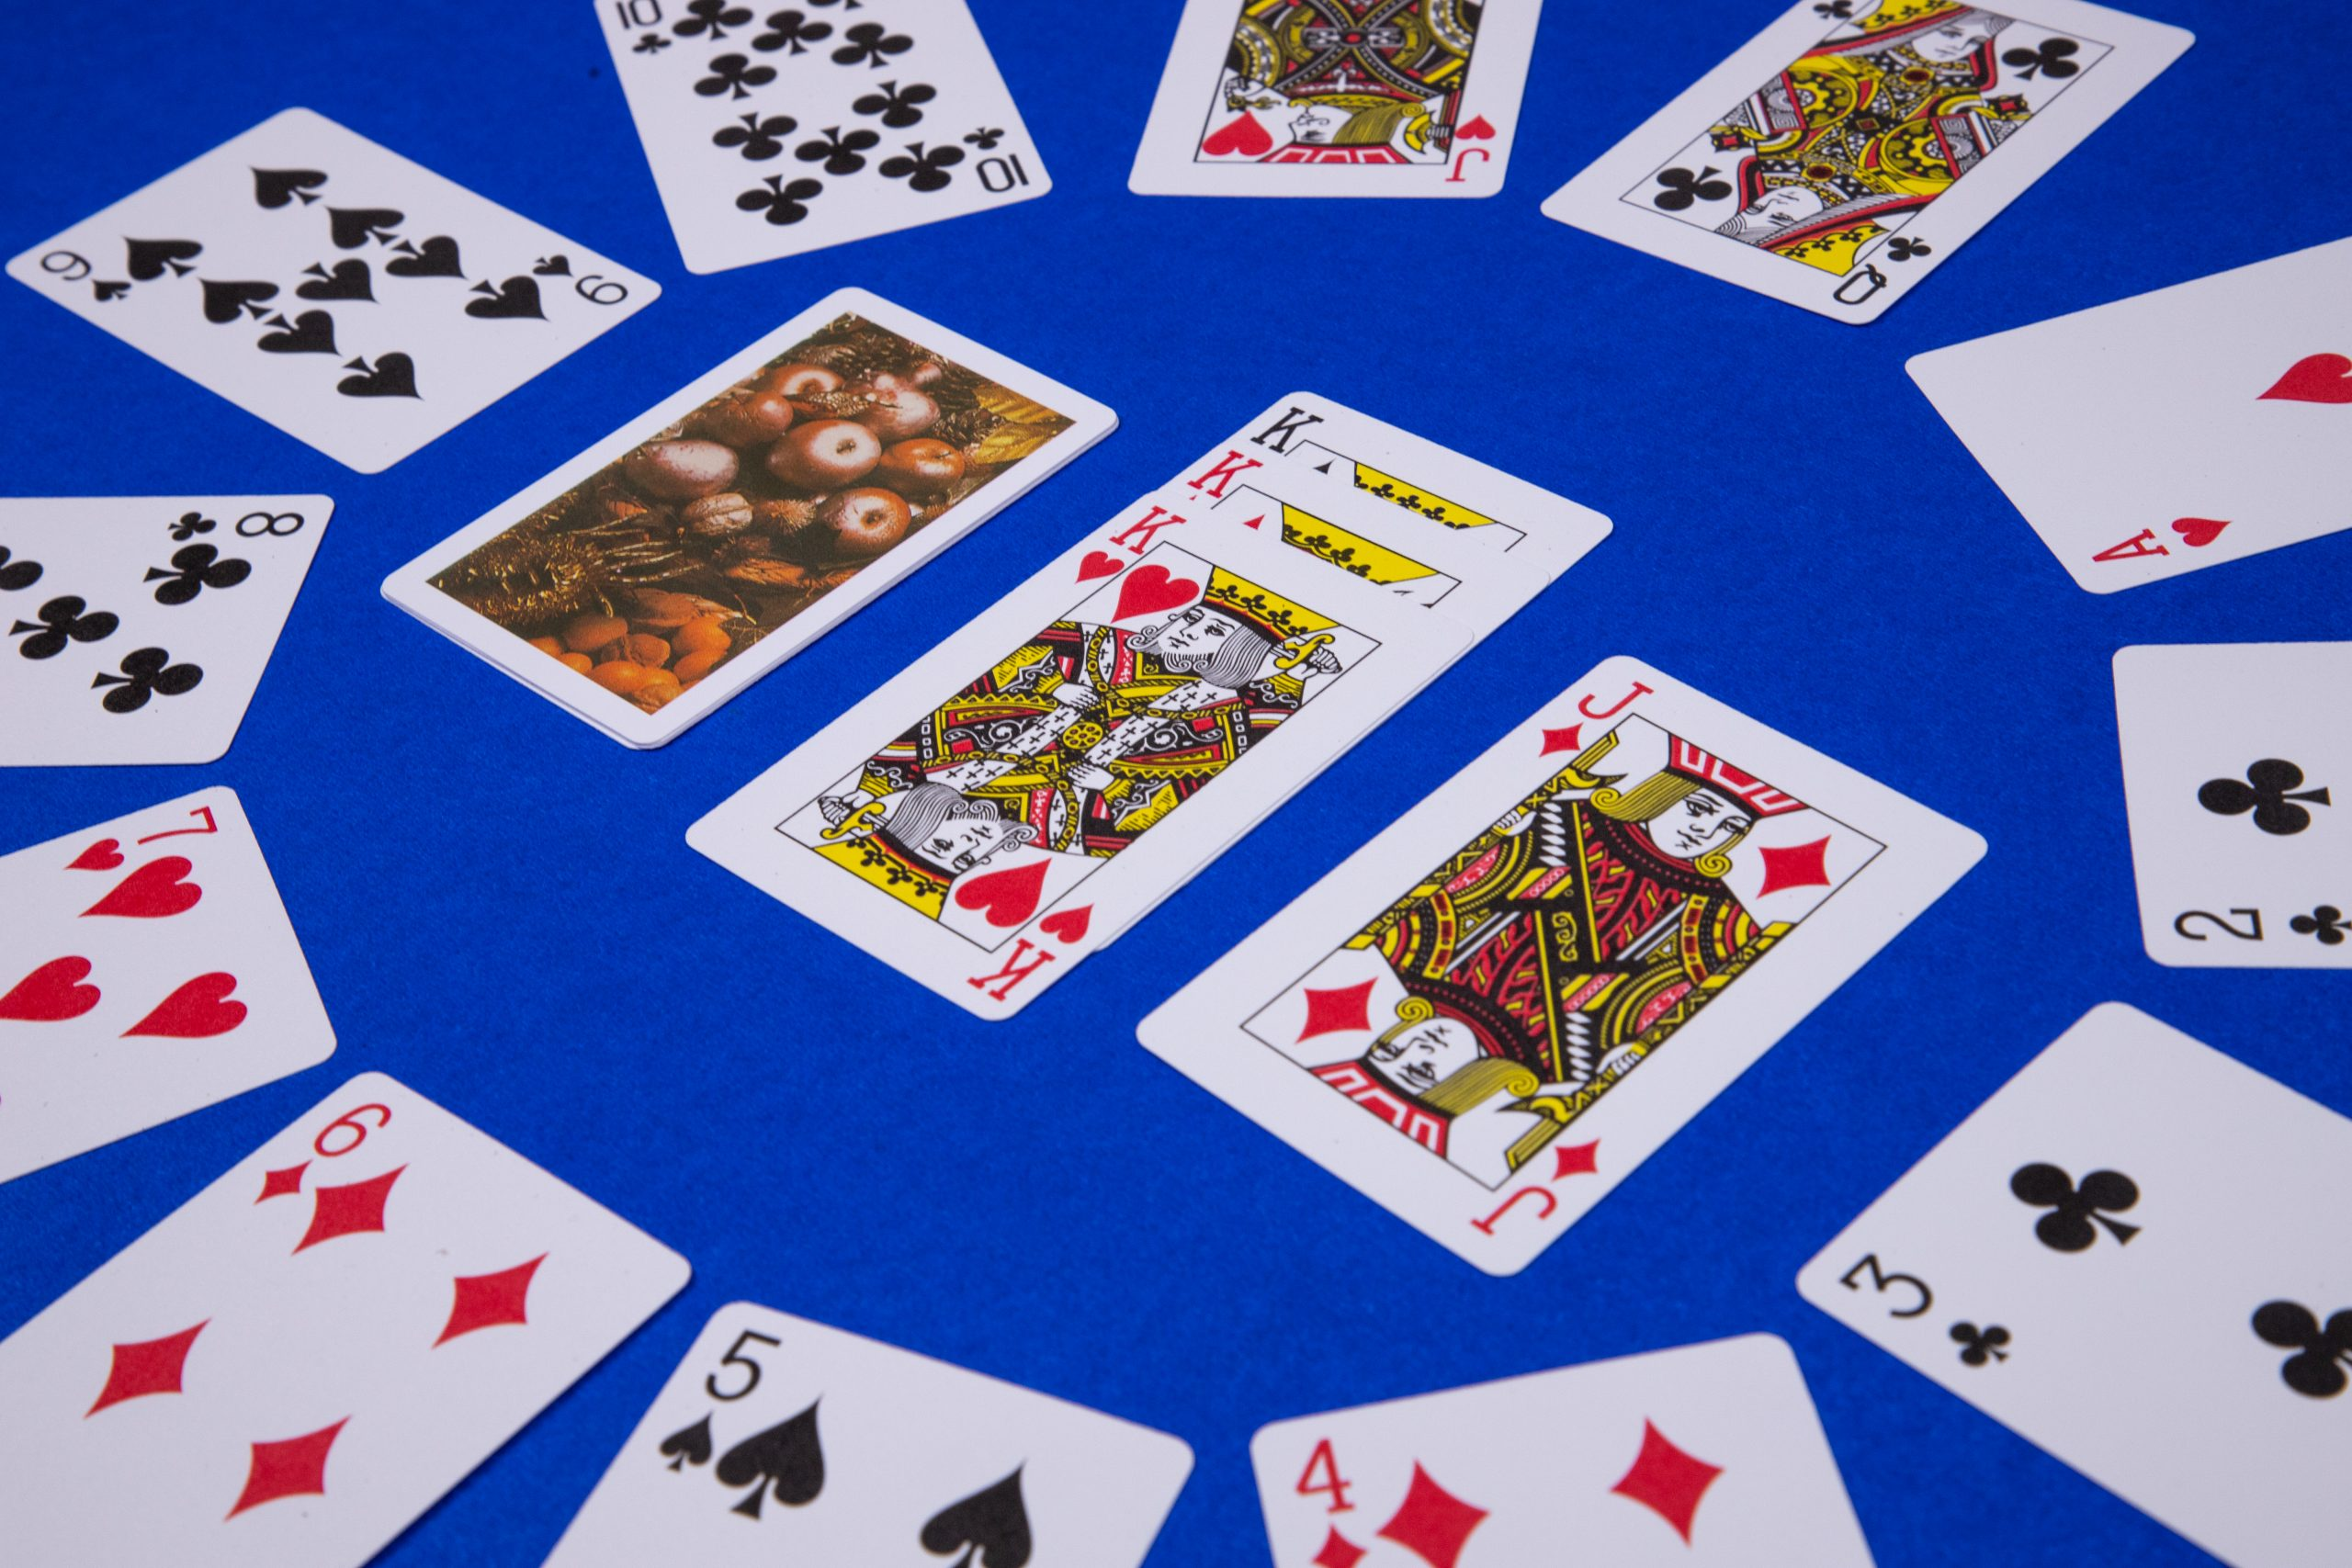 Clock Solitaire Card Game